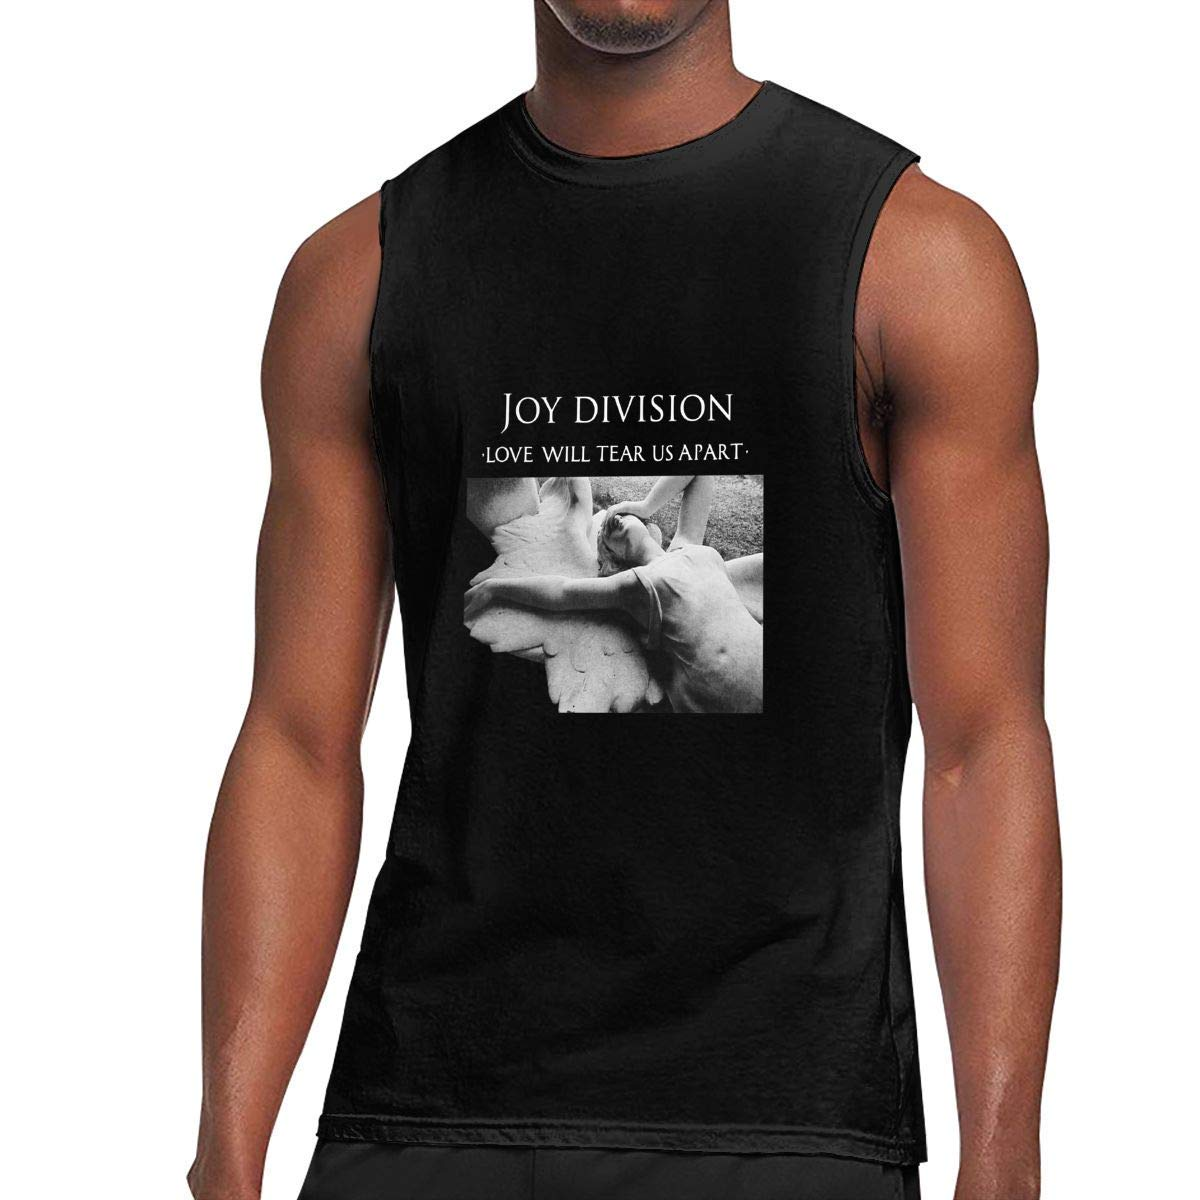 S Sleeveless T Shirts Joy Division Love Will Tear Us Apart Workout Tank Tops Gym Bodybuild